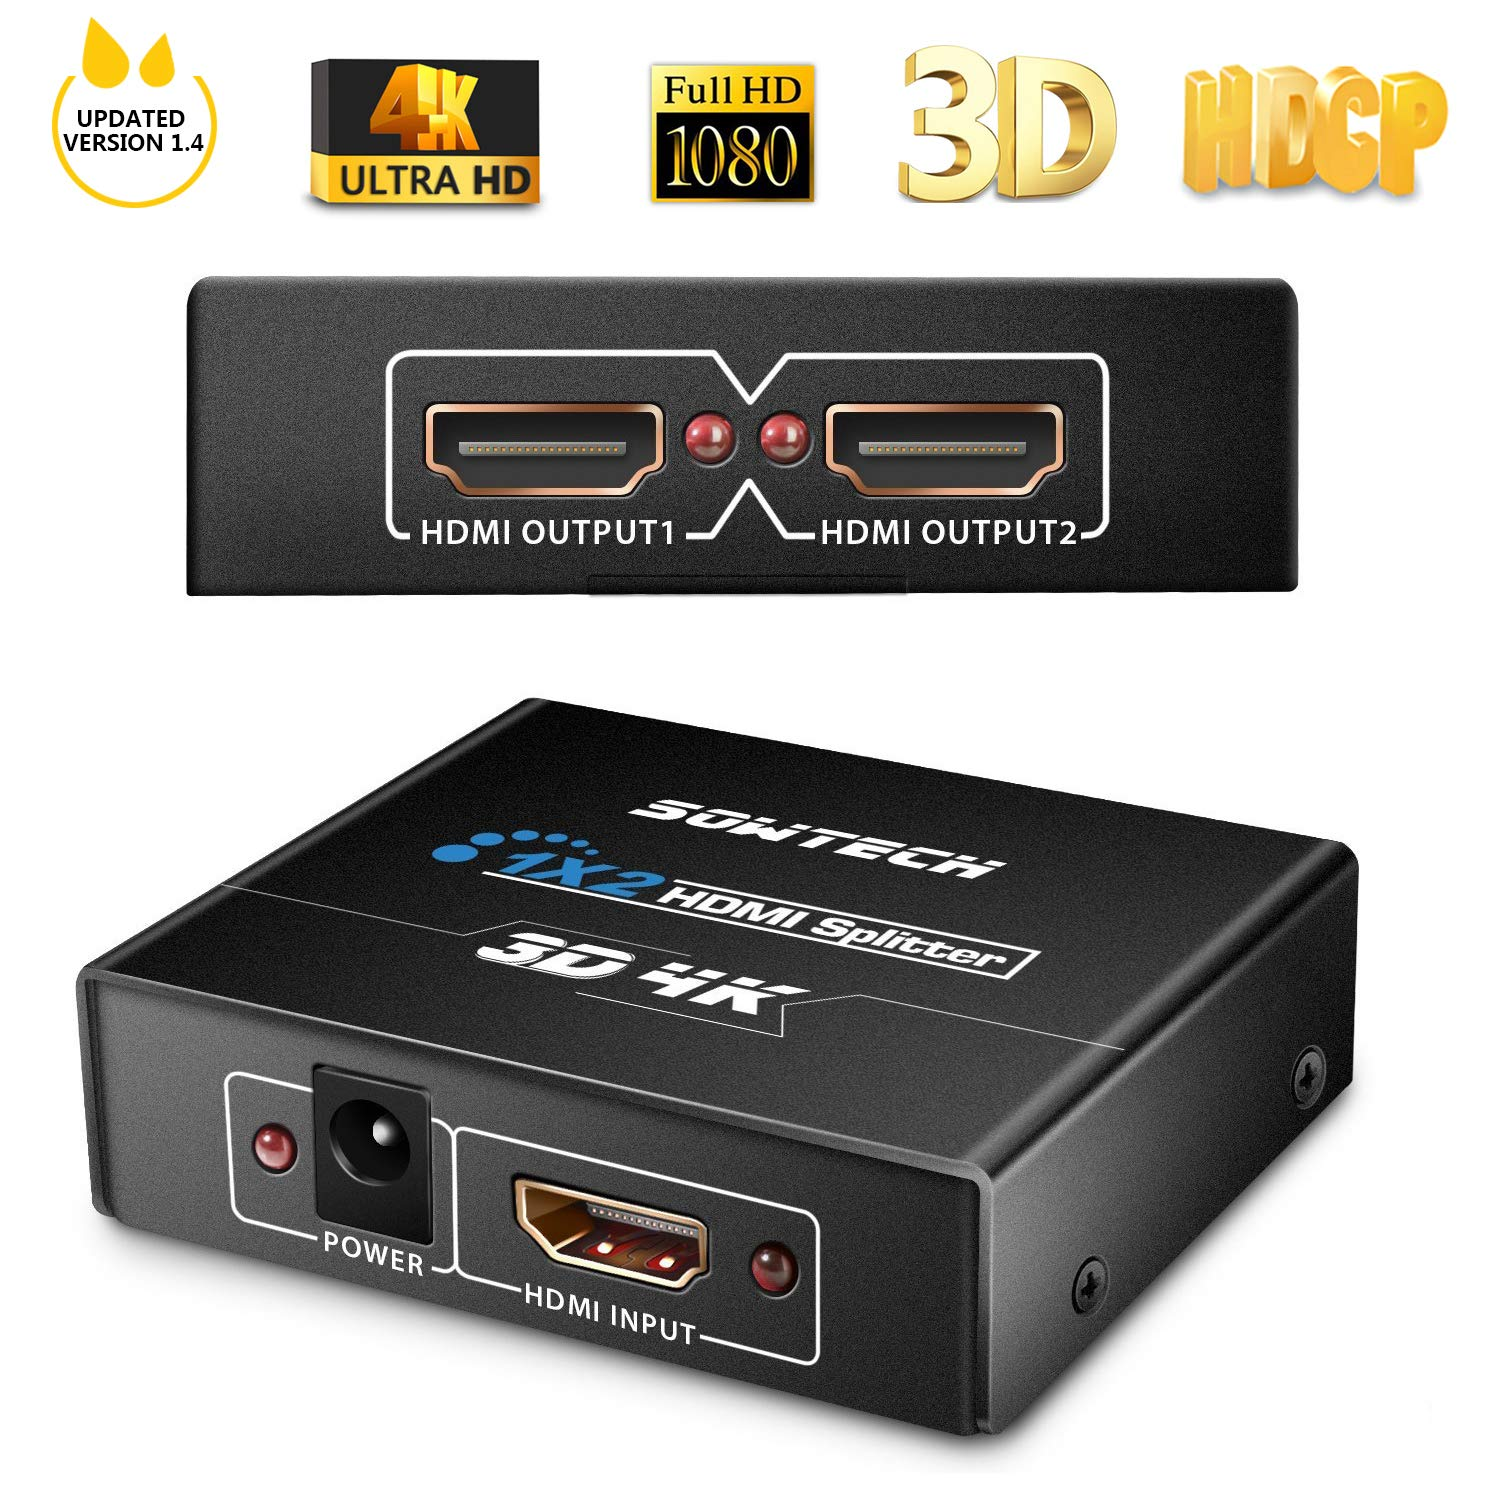 [Upgrade Version] SOWTECH 4K HDMI Splitter HDCP V1.4 Powered HDMI Splitter 1X2 HDMI Splitter for Full HD 1080P Support 4K/2K and 3D Resolution (One Input to Two Outputs)